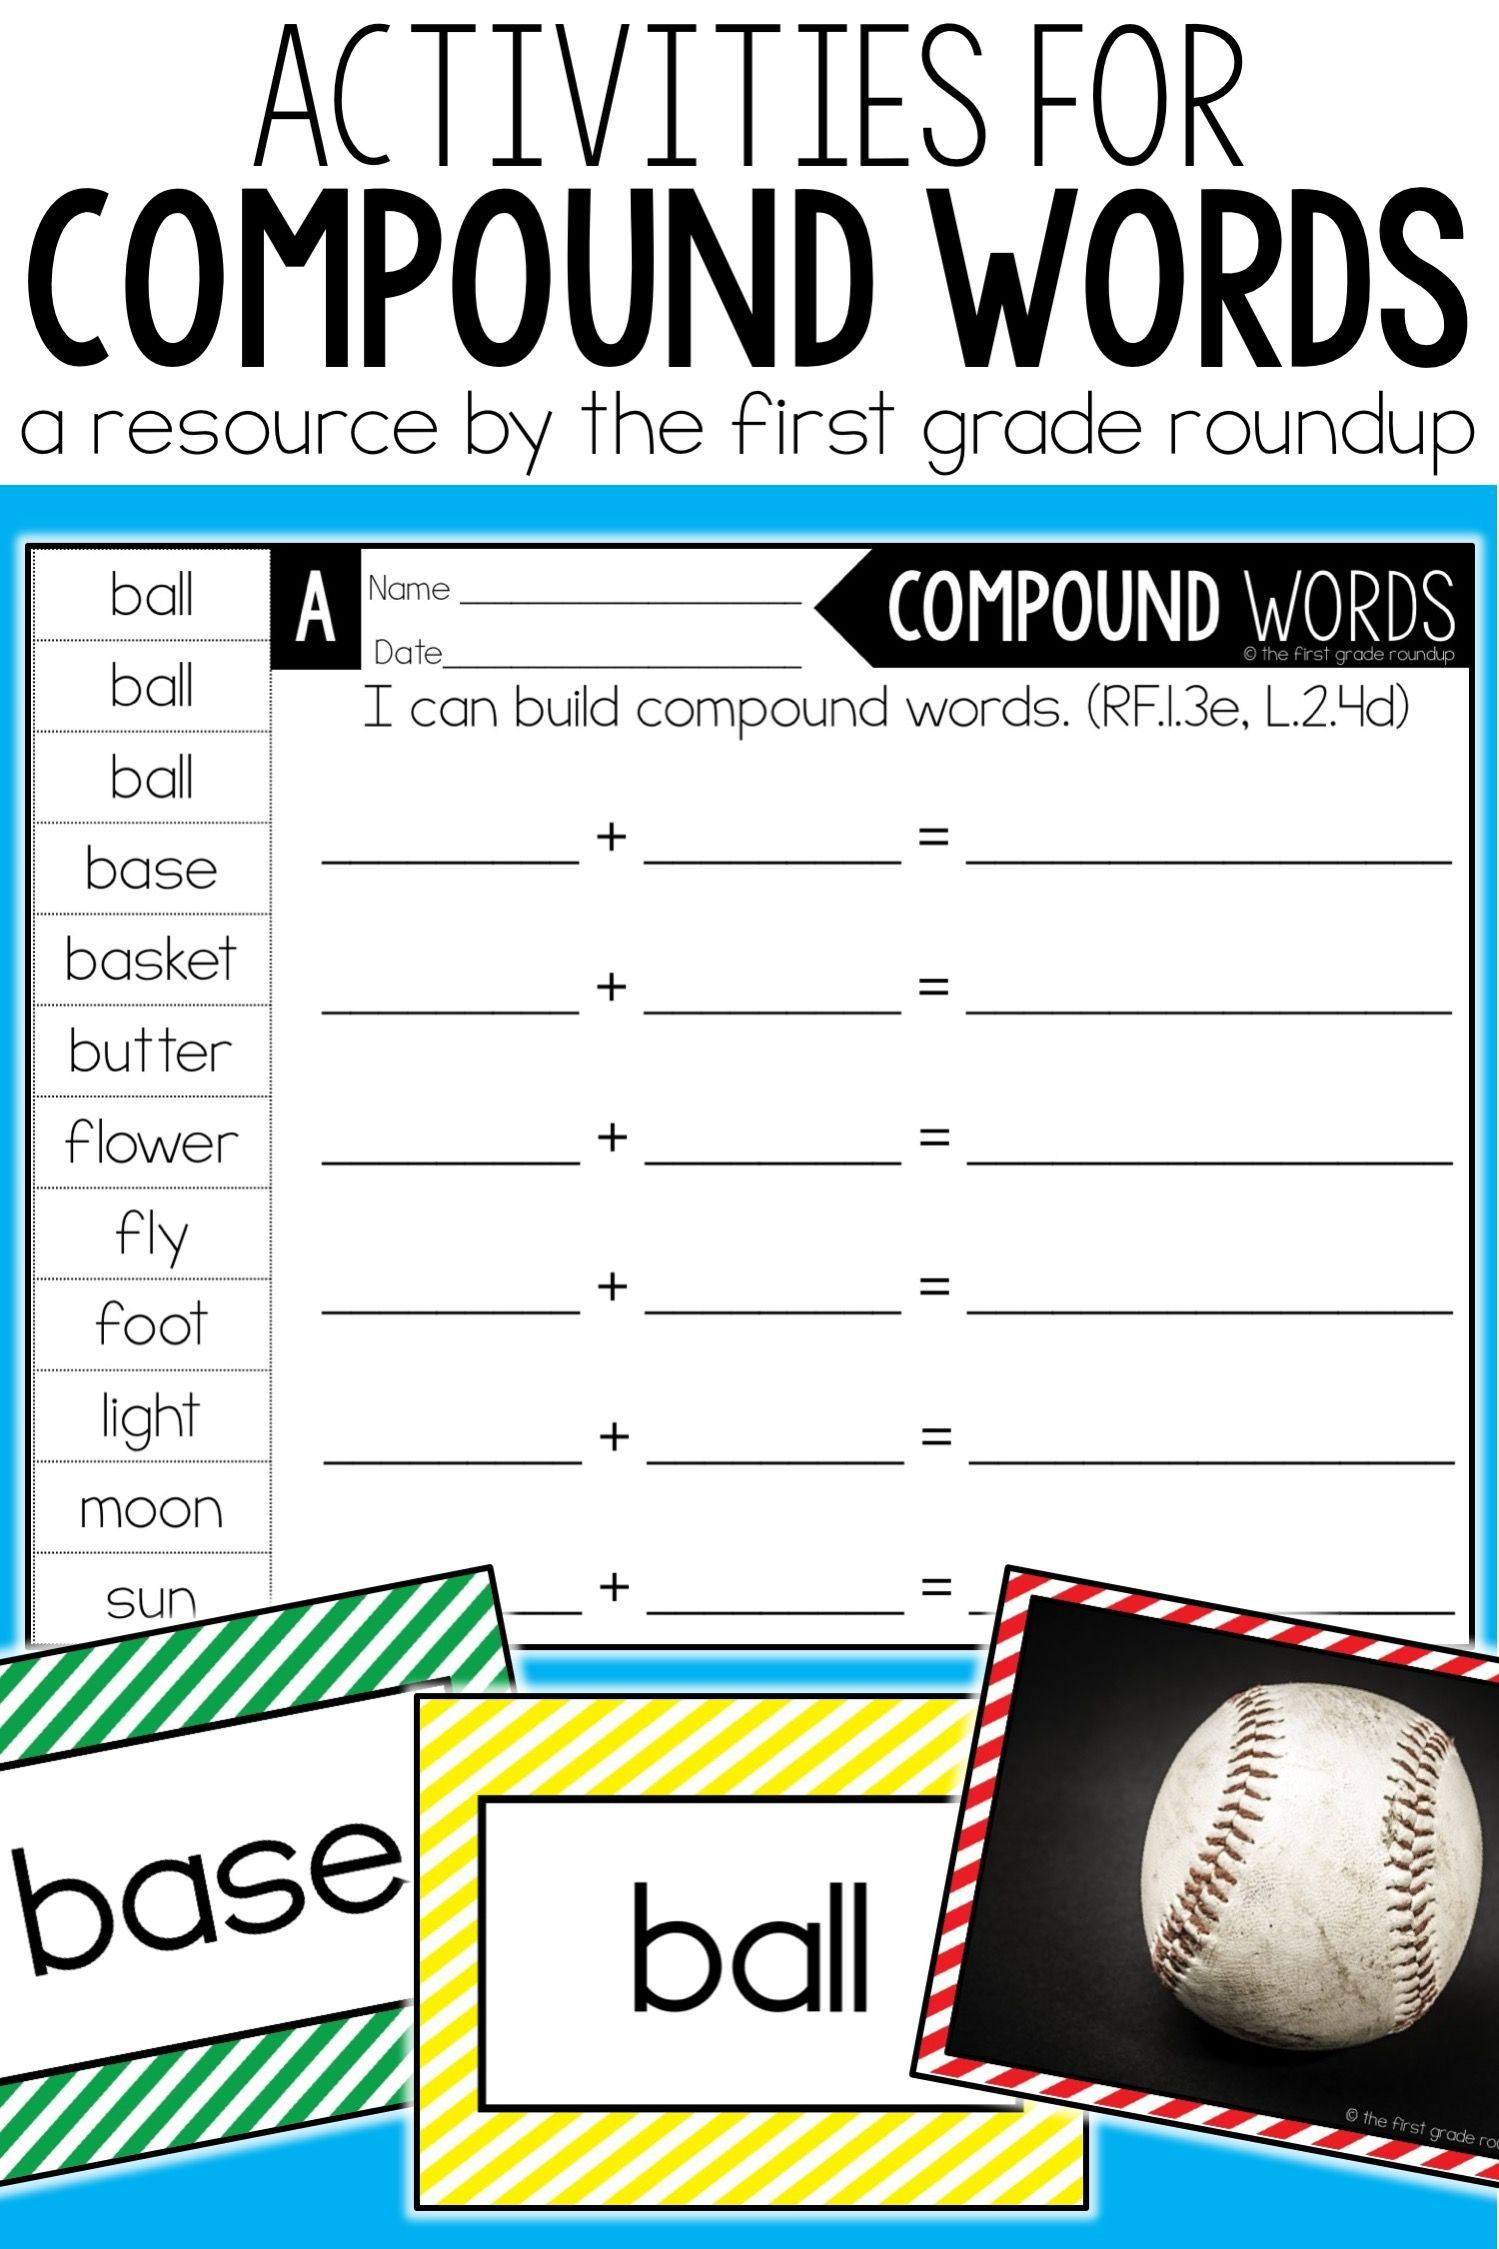 Compound Words Worksheets 1st Grade Pound Words Activity